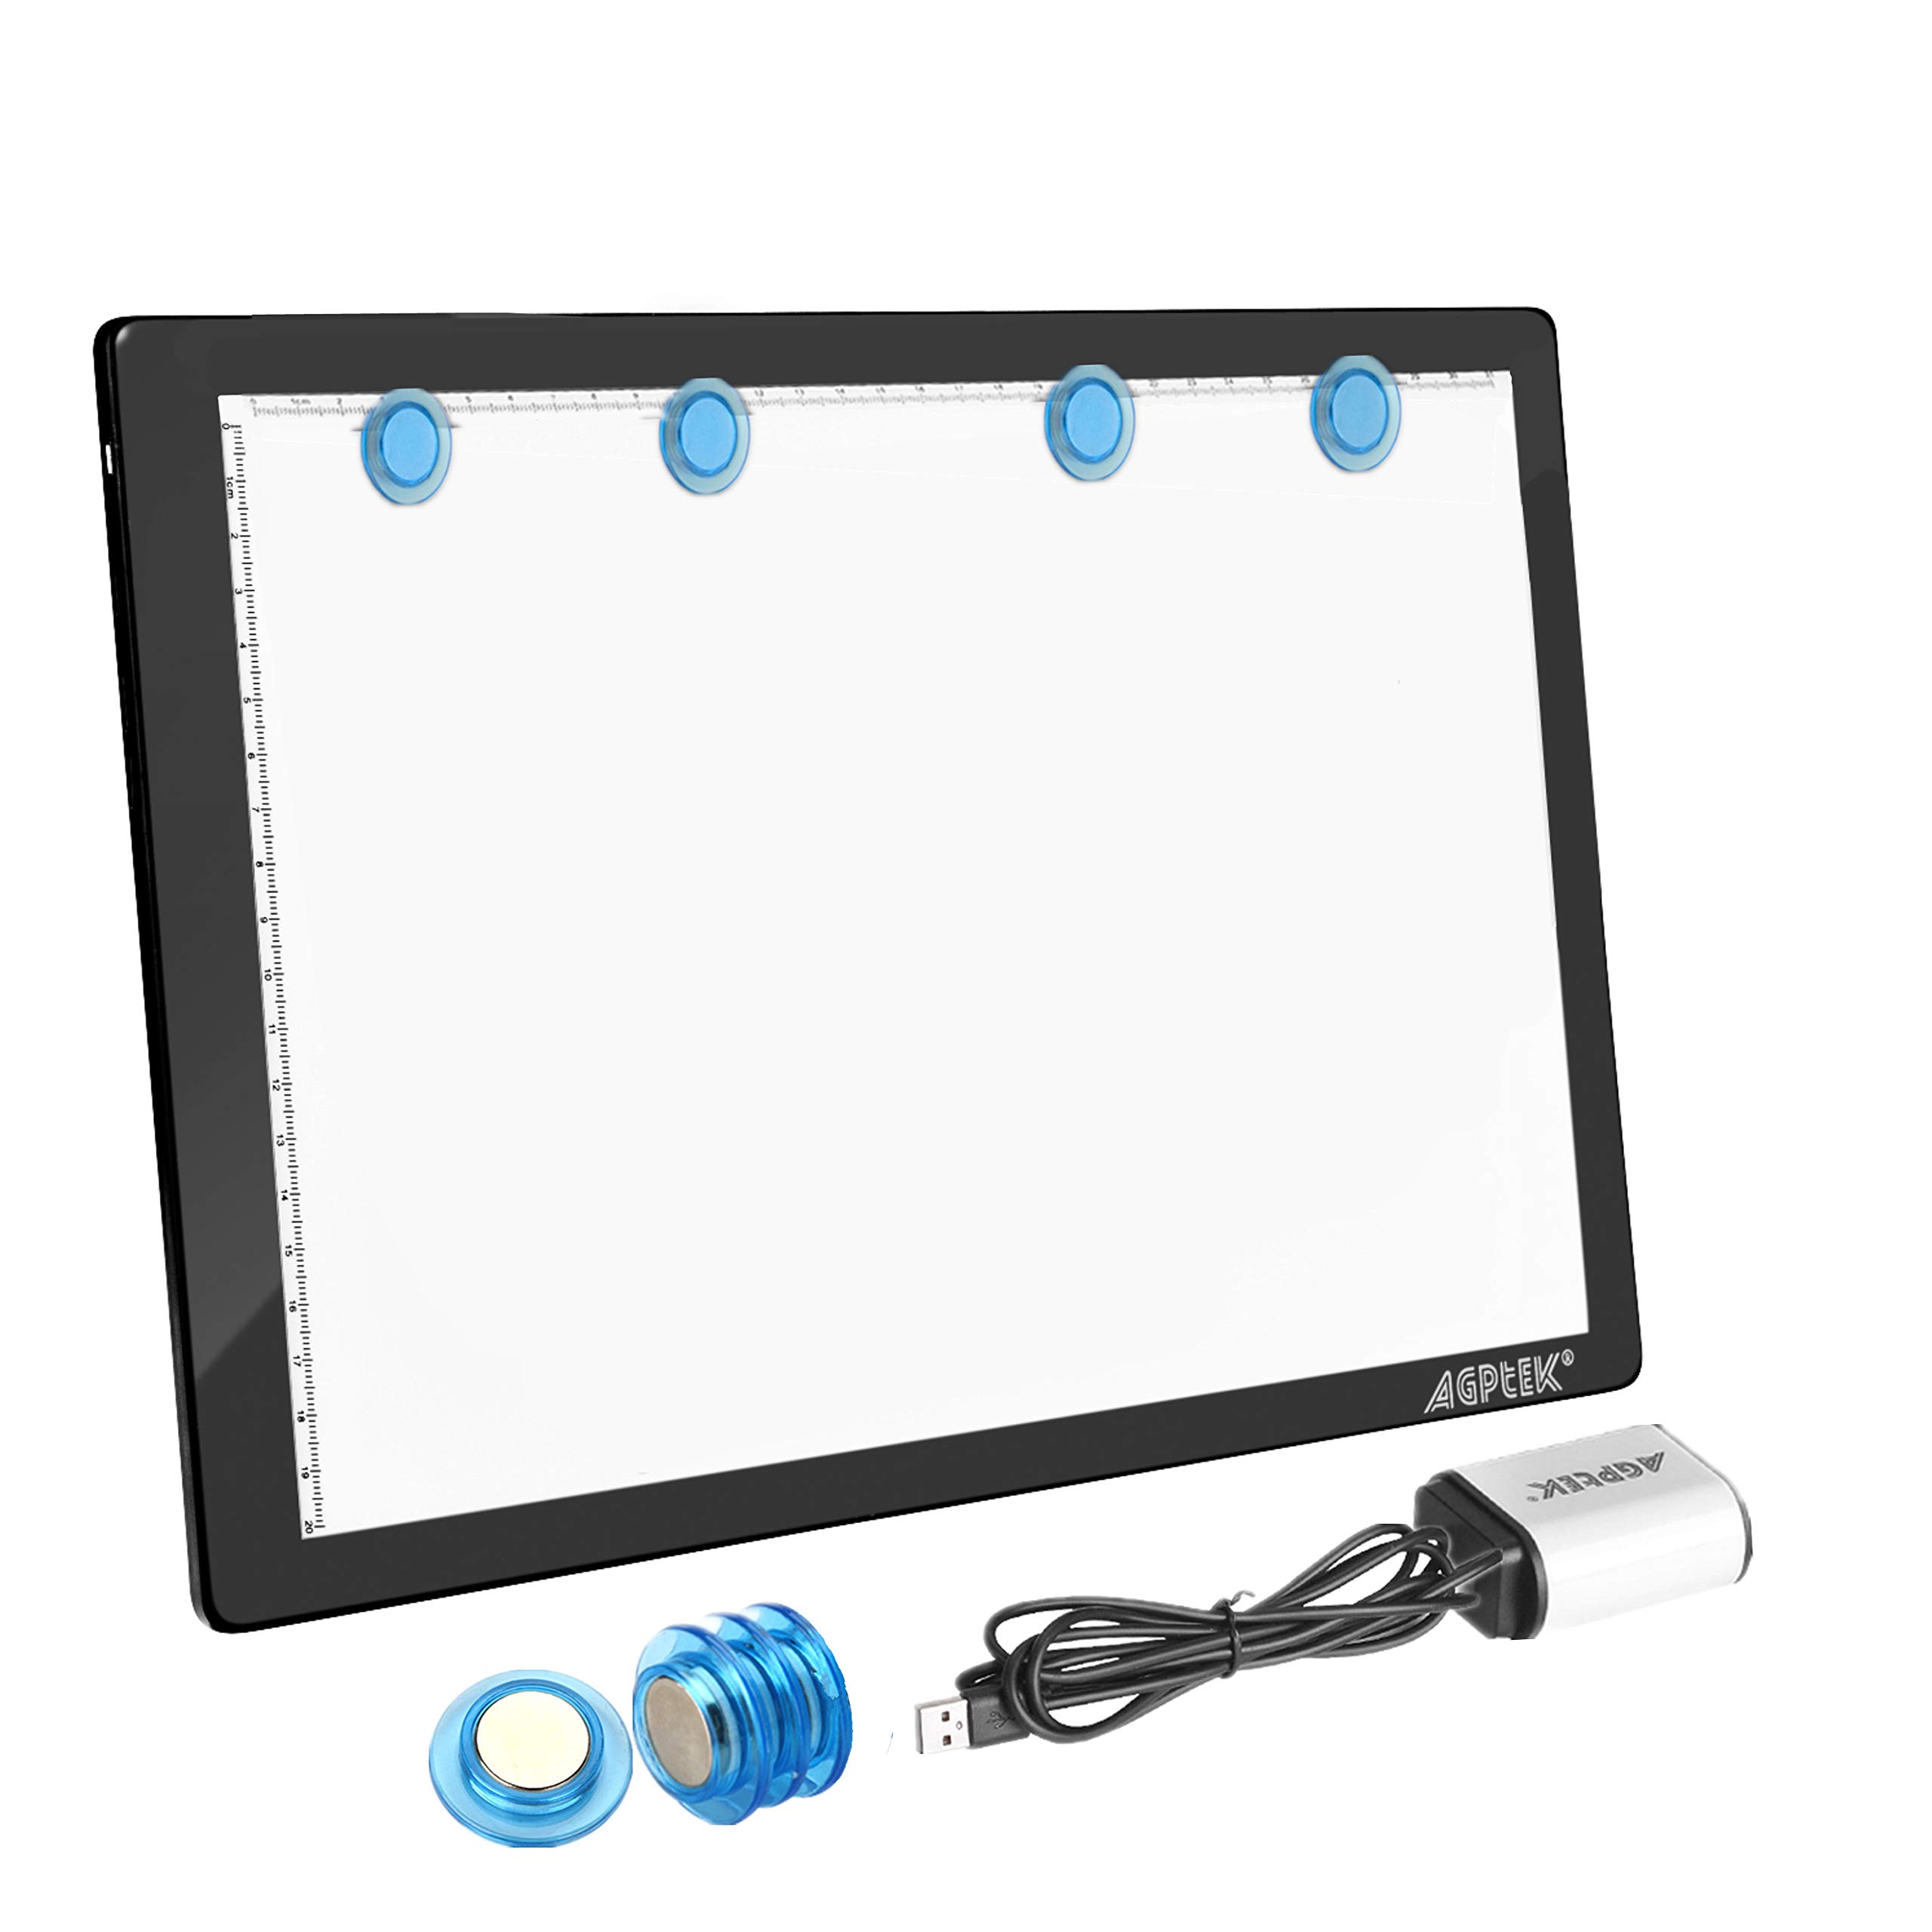 Light Box,Magnetic A4 Light Pad LED Tracing Light Board Physical Buttons Control USB Powered Ultra-thin Dimmable Brightness for Diamond Painting Tatoo Pad Animation,Sketching,Stencilling X-ray Viewing by AGPTEK